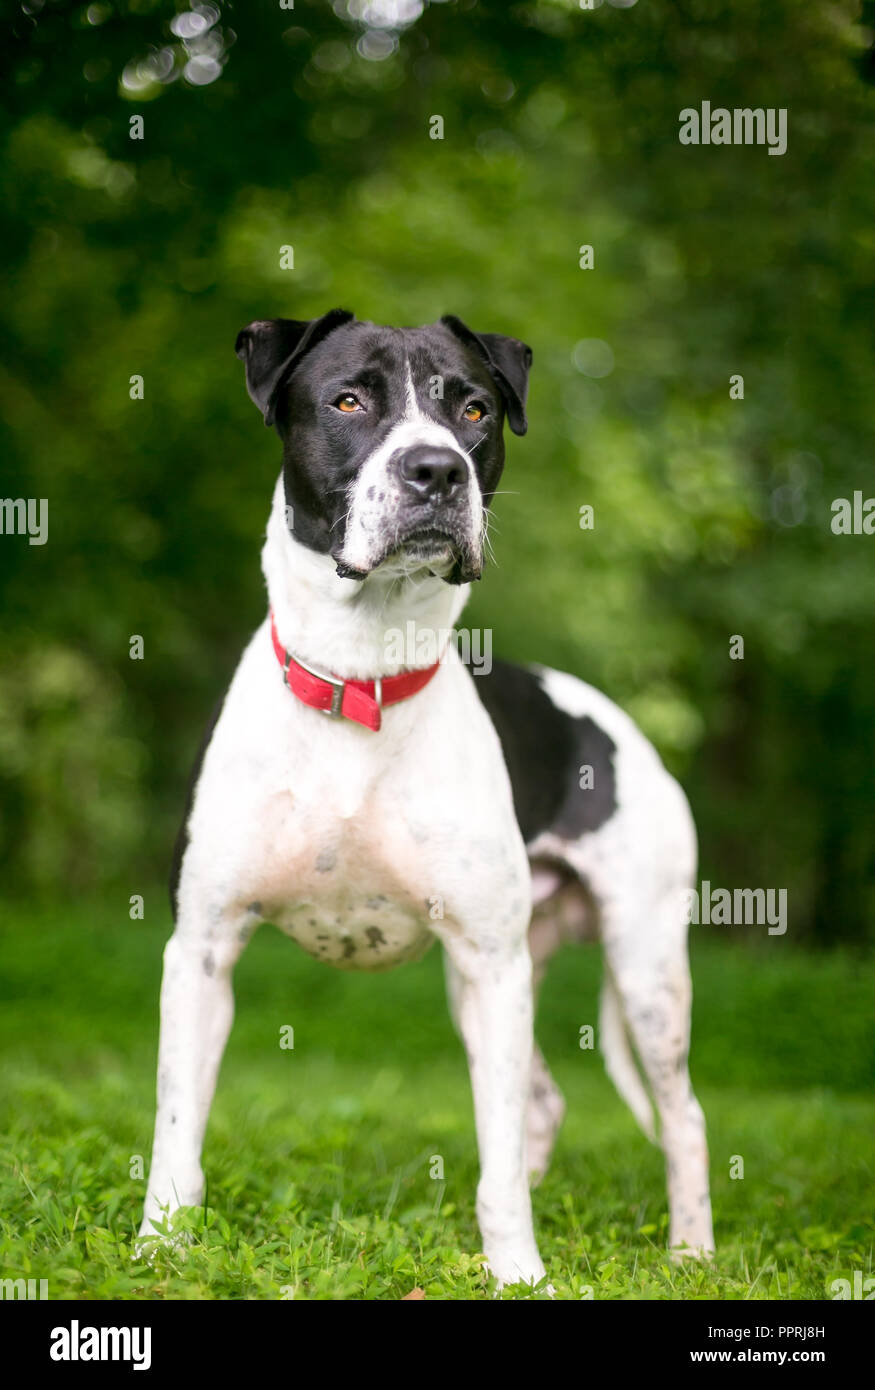 A Black And White American Bulldog Mixed Breed Dog Wearing A Red